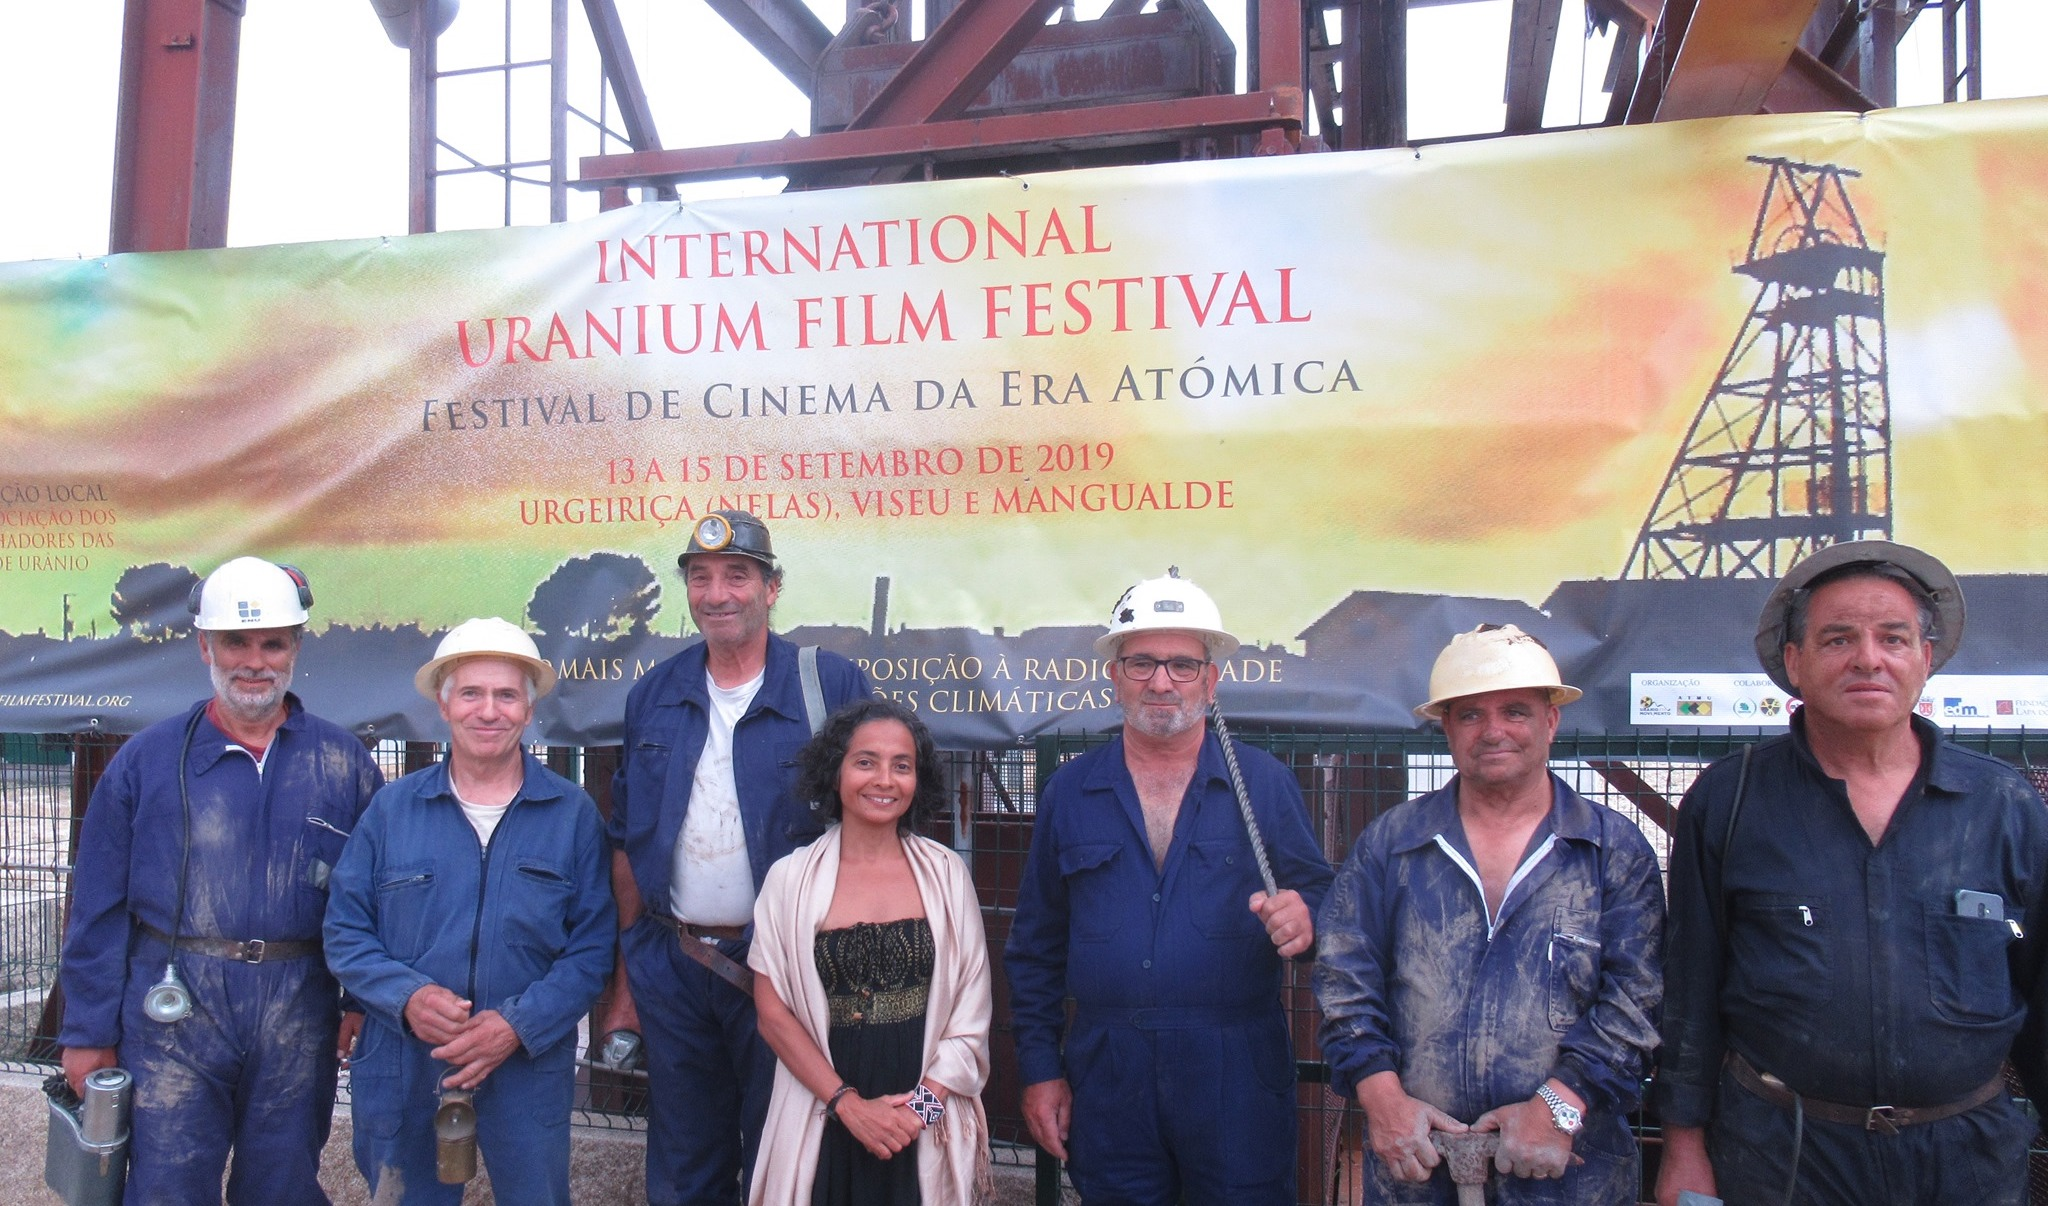 Uranium Film Festival in Portugal 2019 - Urgeirica Uranium Mine